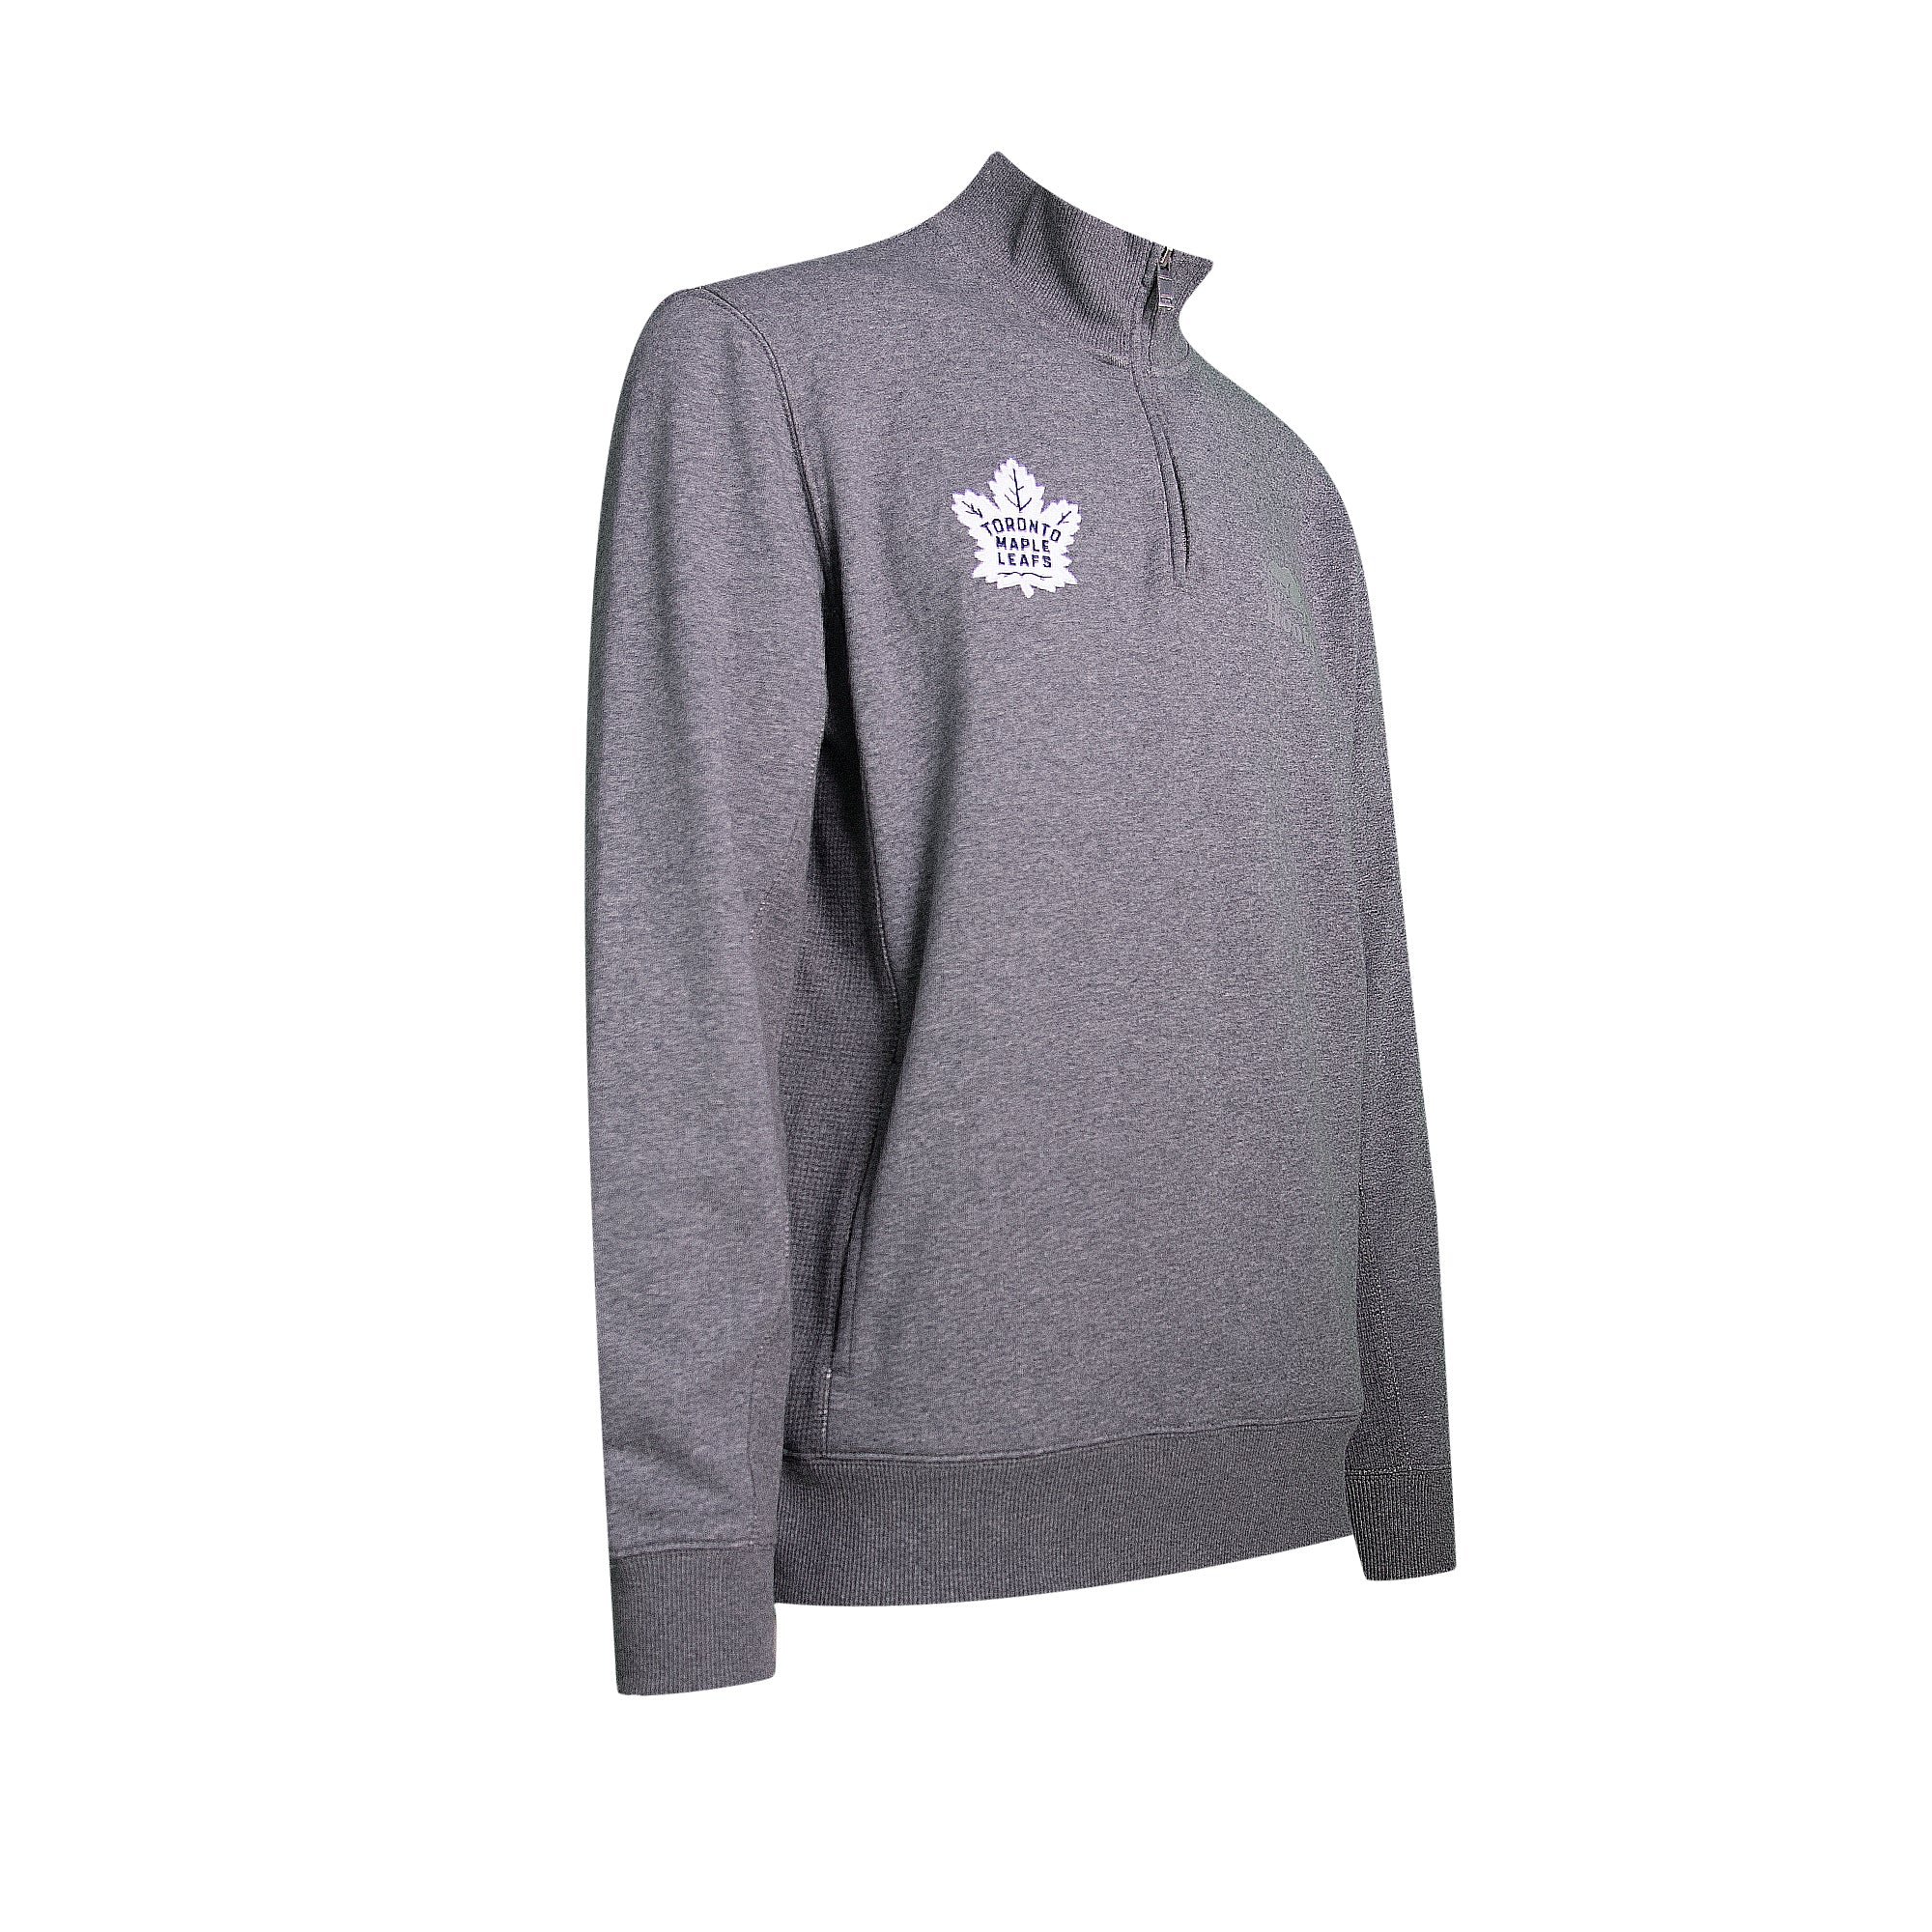 Maple Leafs Roots Men's Seasonless 1/4 Zip Sweater